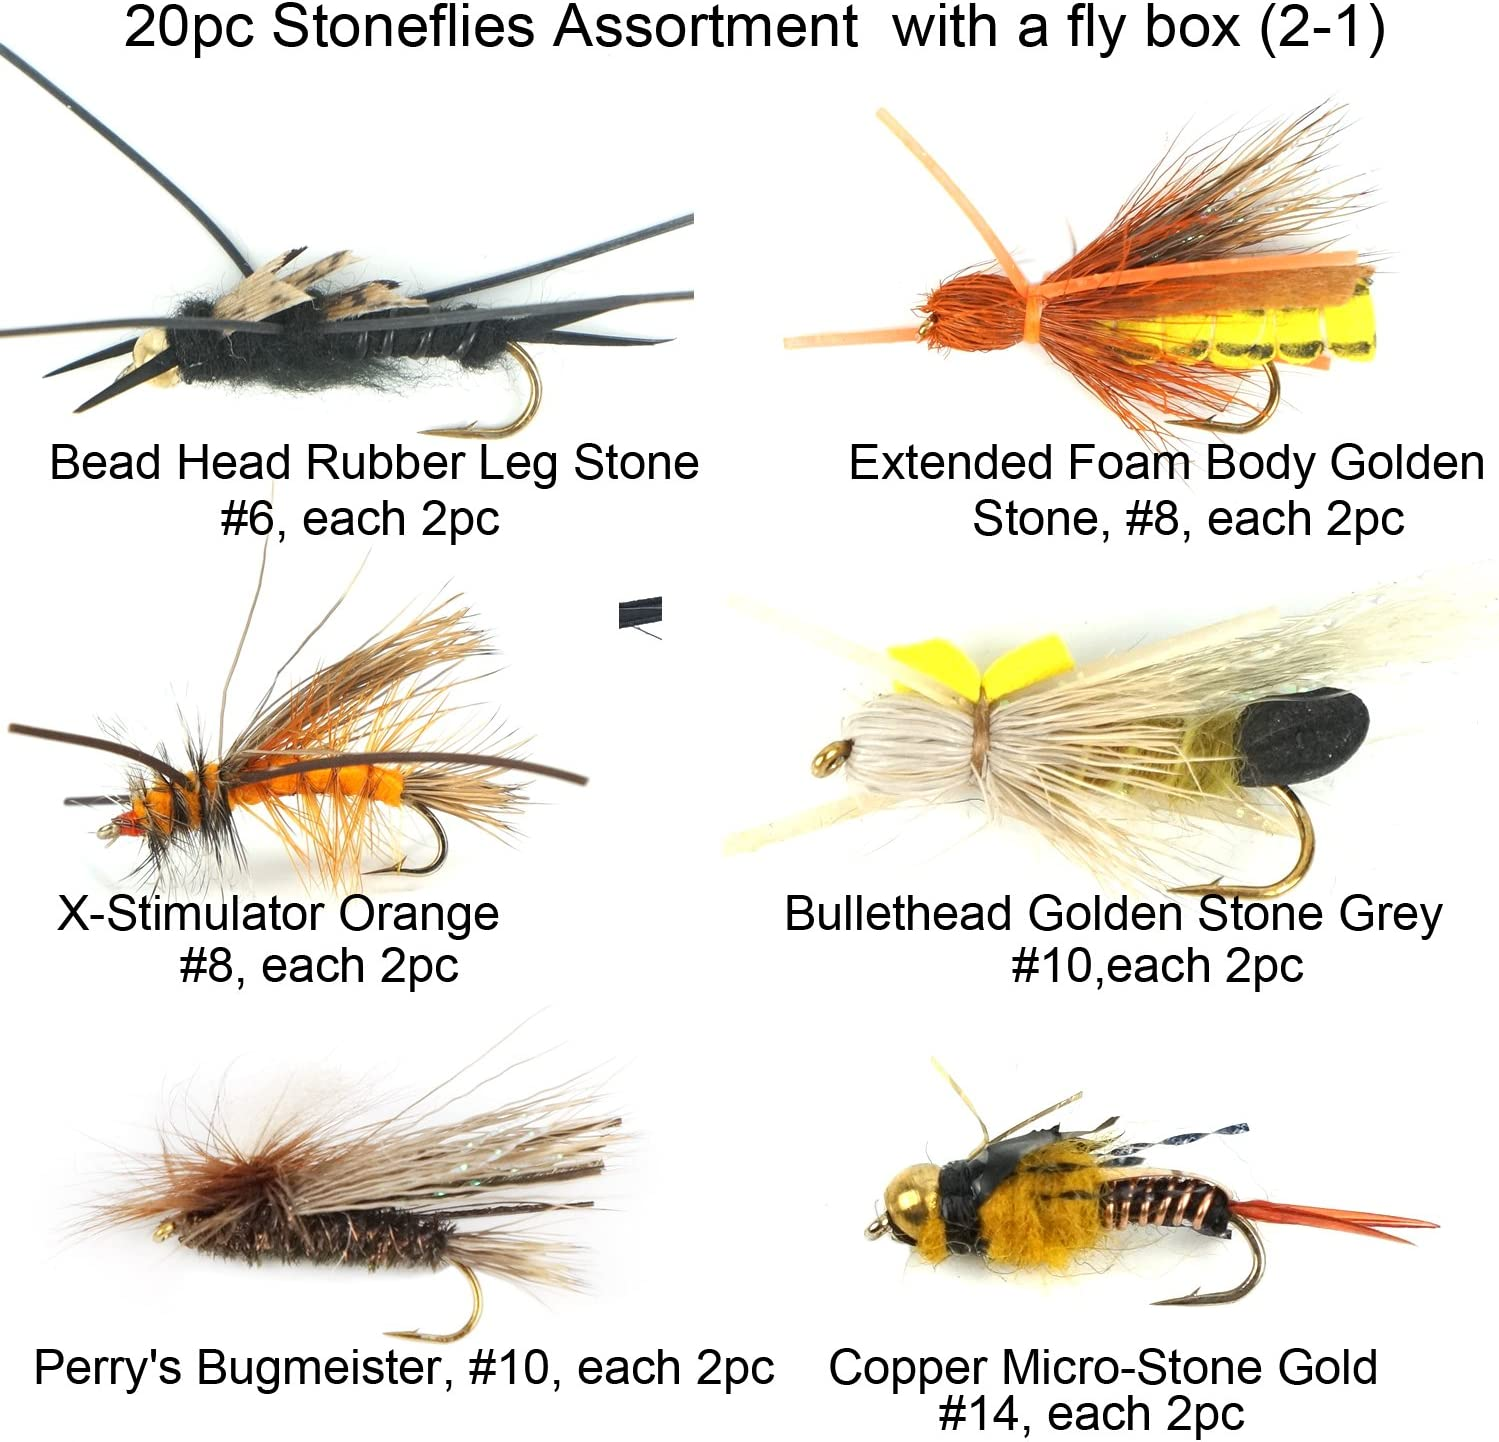 Salmon 6 x Rubber Leg Stimulator Stonefly Dry Fly Fishing Flies For Trout Bass